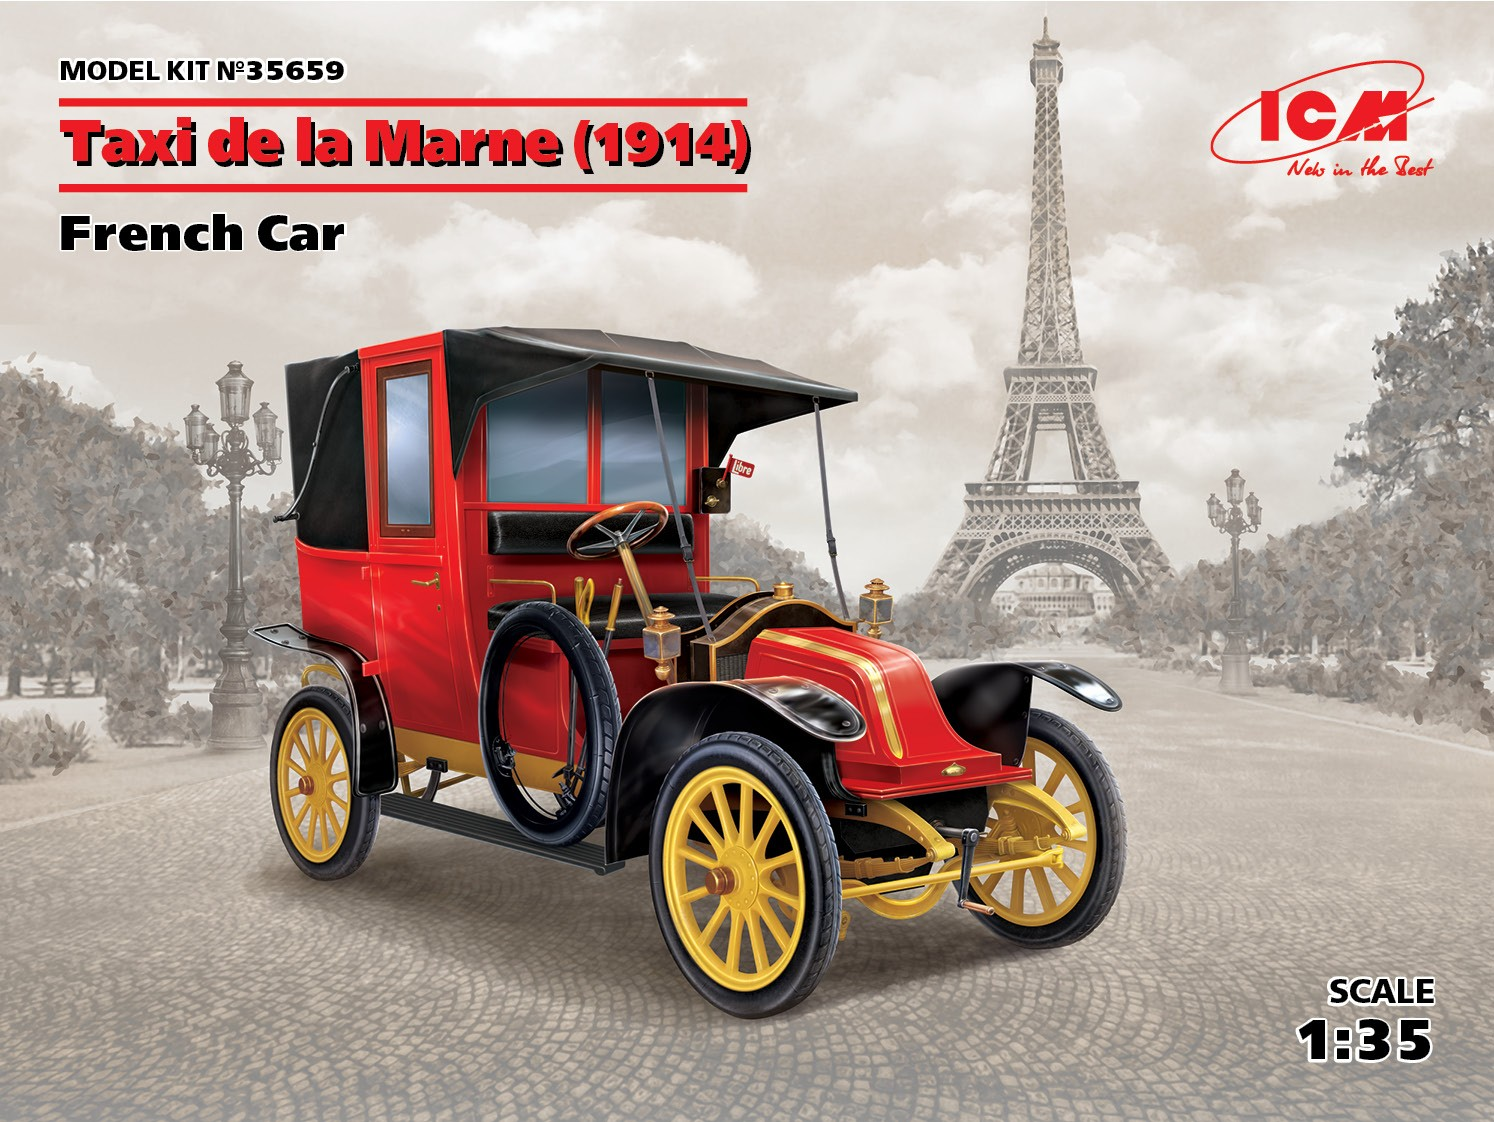 ICM Taxi de la Marne (1914), French Car